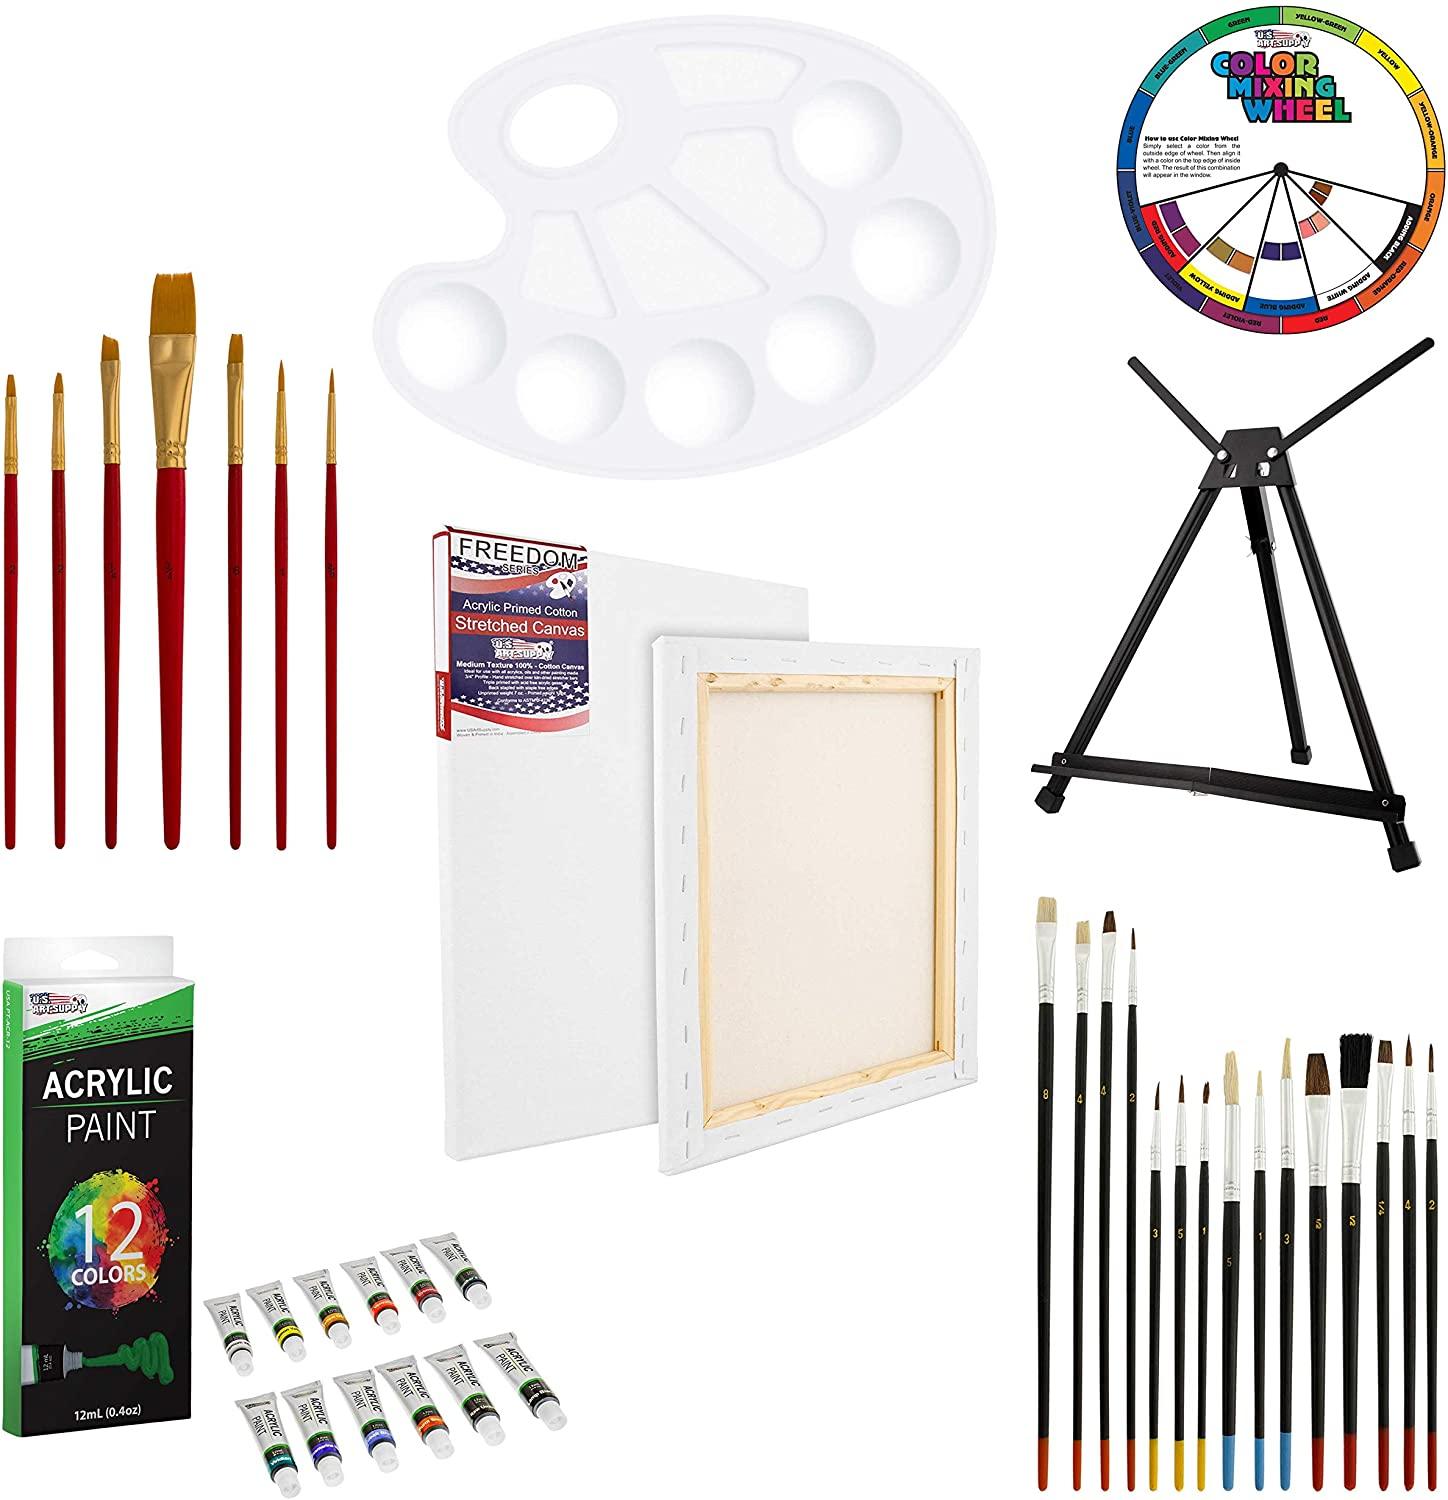 U.S. Art Supply 39-Piece Acrylic Artist Painting Set - Aluminum Table Easel, 12 Acrylic Colors, Stretched Canvas, Paint Brushes & Plastic Palette